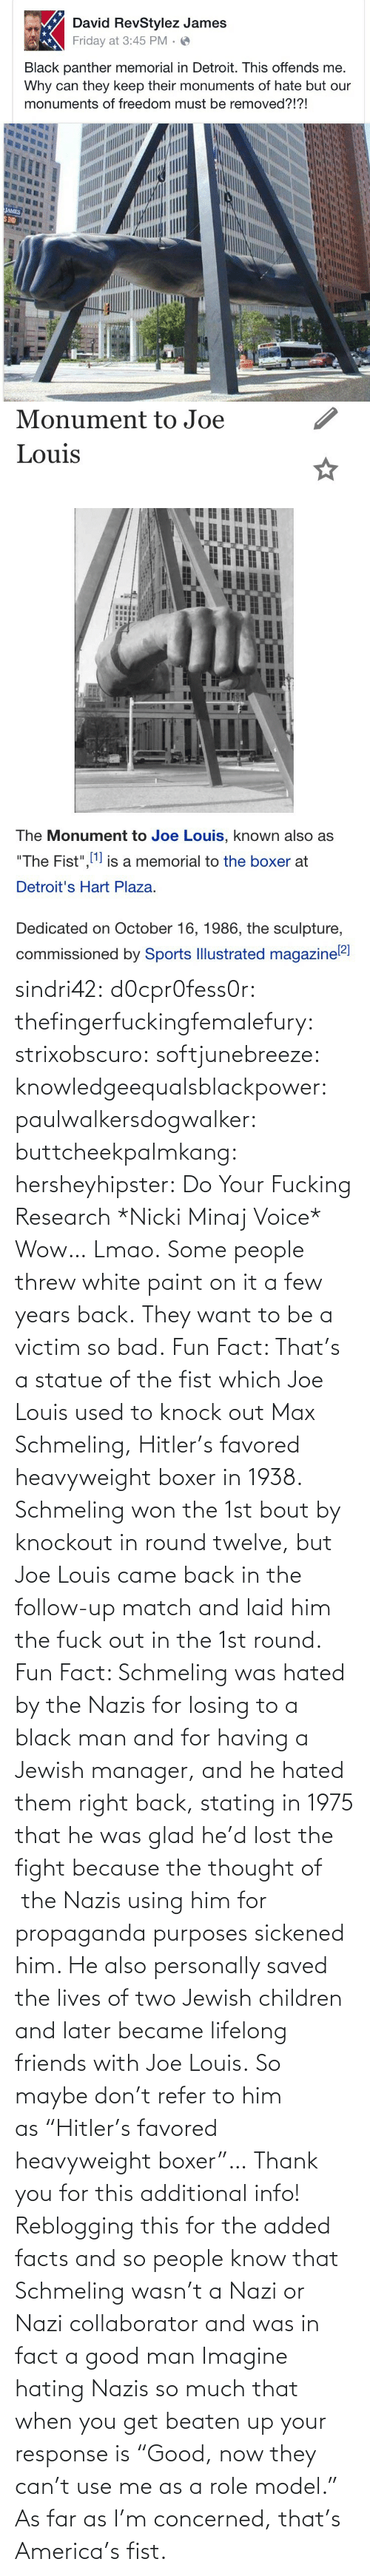 "used: sindri42:  d0cpr0fess0r:  thefingerfuckingfemalefury:  strixobscuro:  softjunebreeze:  knowledgeequalsblackpower:  paulwalkersdogwalker:   buttcheekpalmkang:   hersheyhipster:  Do Your Fucking Research *Nicki Minaj Voice*    Wow… Lmao.   Some people threw white paint on it a few years back.   They want to be a victim so bad.  Fun Fact: That's a statue of the fist which Joe Louis used to knock out Max Schmeling, Hitler's favored heavyweight boxer in 1938. Schmeling won the 1st bout by knockout in round twelve, but Joe Louis came back in the follow-up match and laid him the fuck out in the 1st round.  Fun Fact: Schmeling was hated by the Nazis for losing to a black man and for having a Jewish manager, and he hated them right back, stating in 1975 that he was glad he'd lost the fight because the thought of  the Nazis using him for propaganda purposes sickened him. He also personally saved the lives of two Jewish children and later became lifelong friends with Joe Louis. So maybe don't refer to him as ""Hitler's favored heavyweight boxer""…  Thank you for this additional info! Reblogging this for the added facts and so people know that Schmeling wasn't a Nazi or Nazi collaborator and was in fact a good man   Imagine hating Nazis so much that when you get beaten up your response is ""Good, now they can't use me as a role model.""  As far as I'm concerned, that's America's fist."